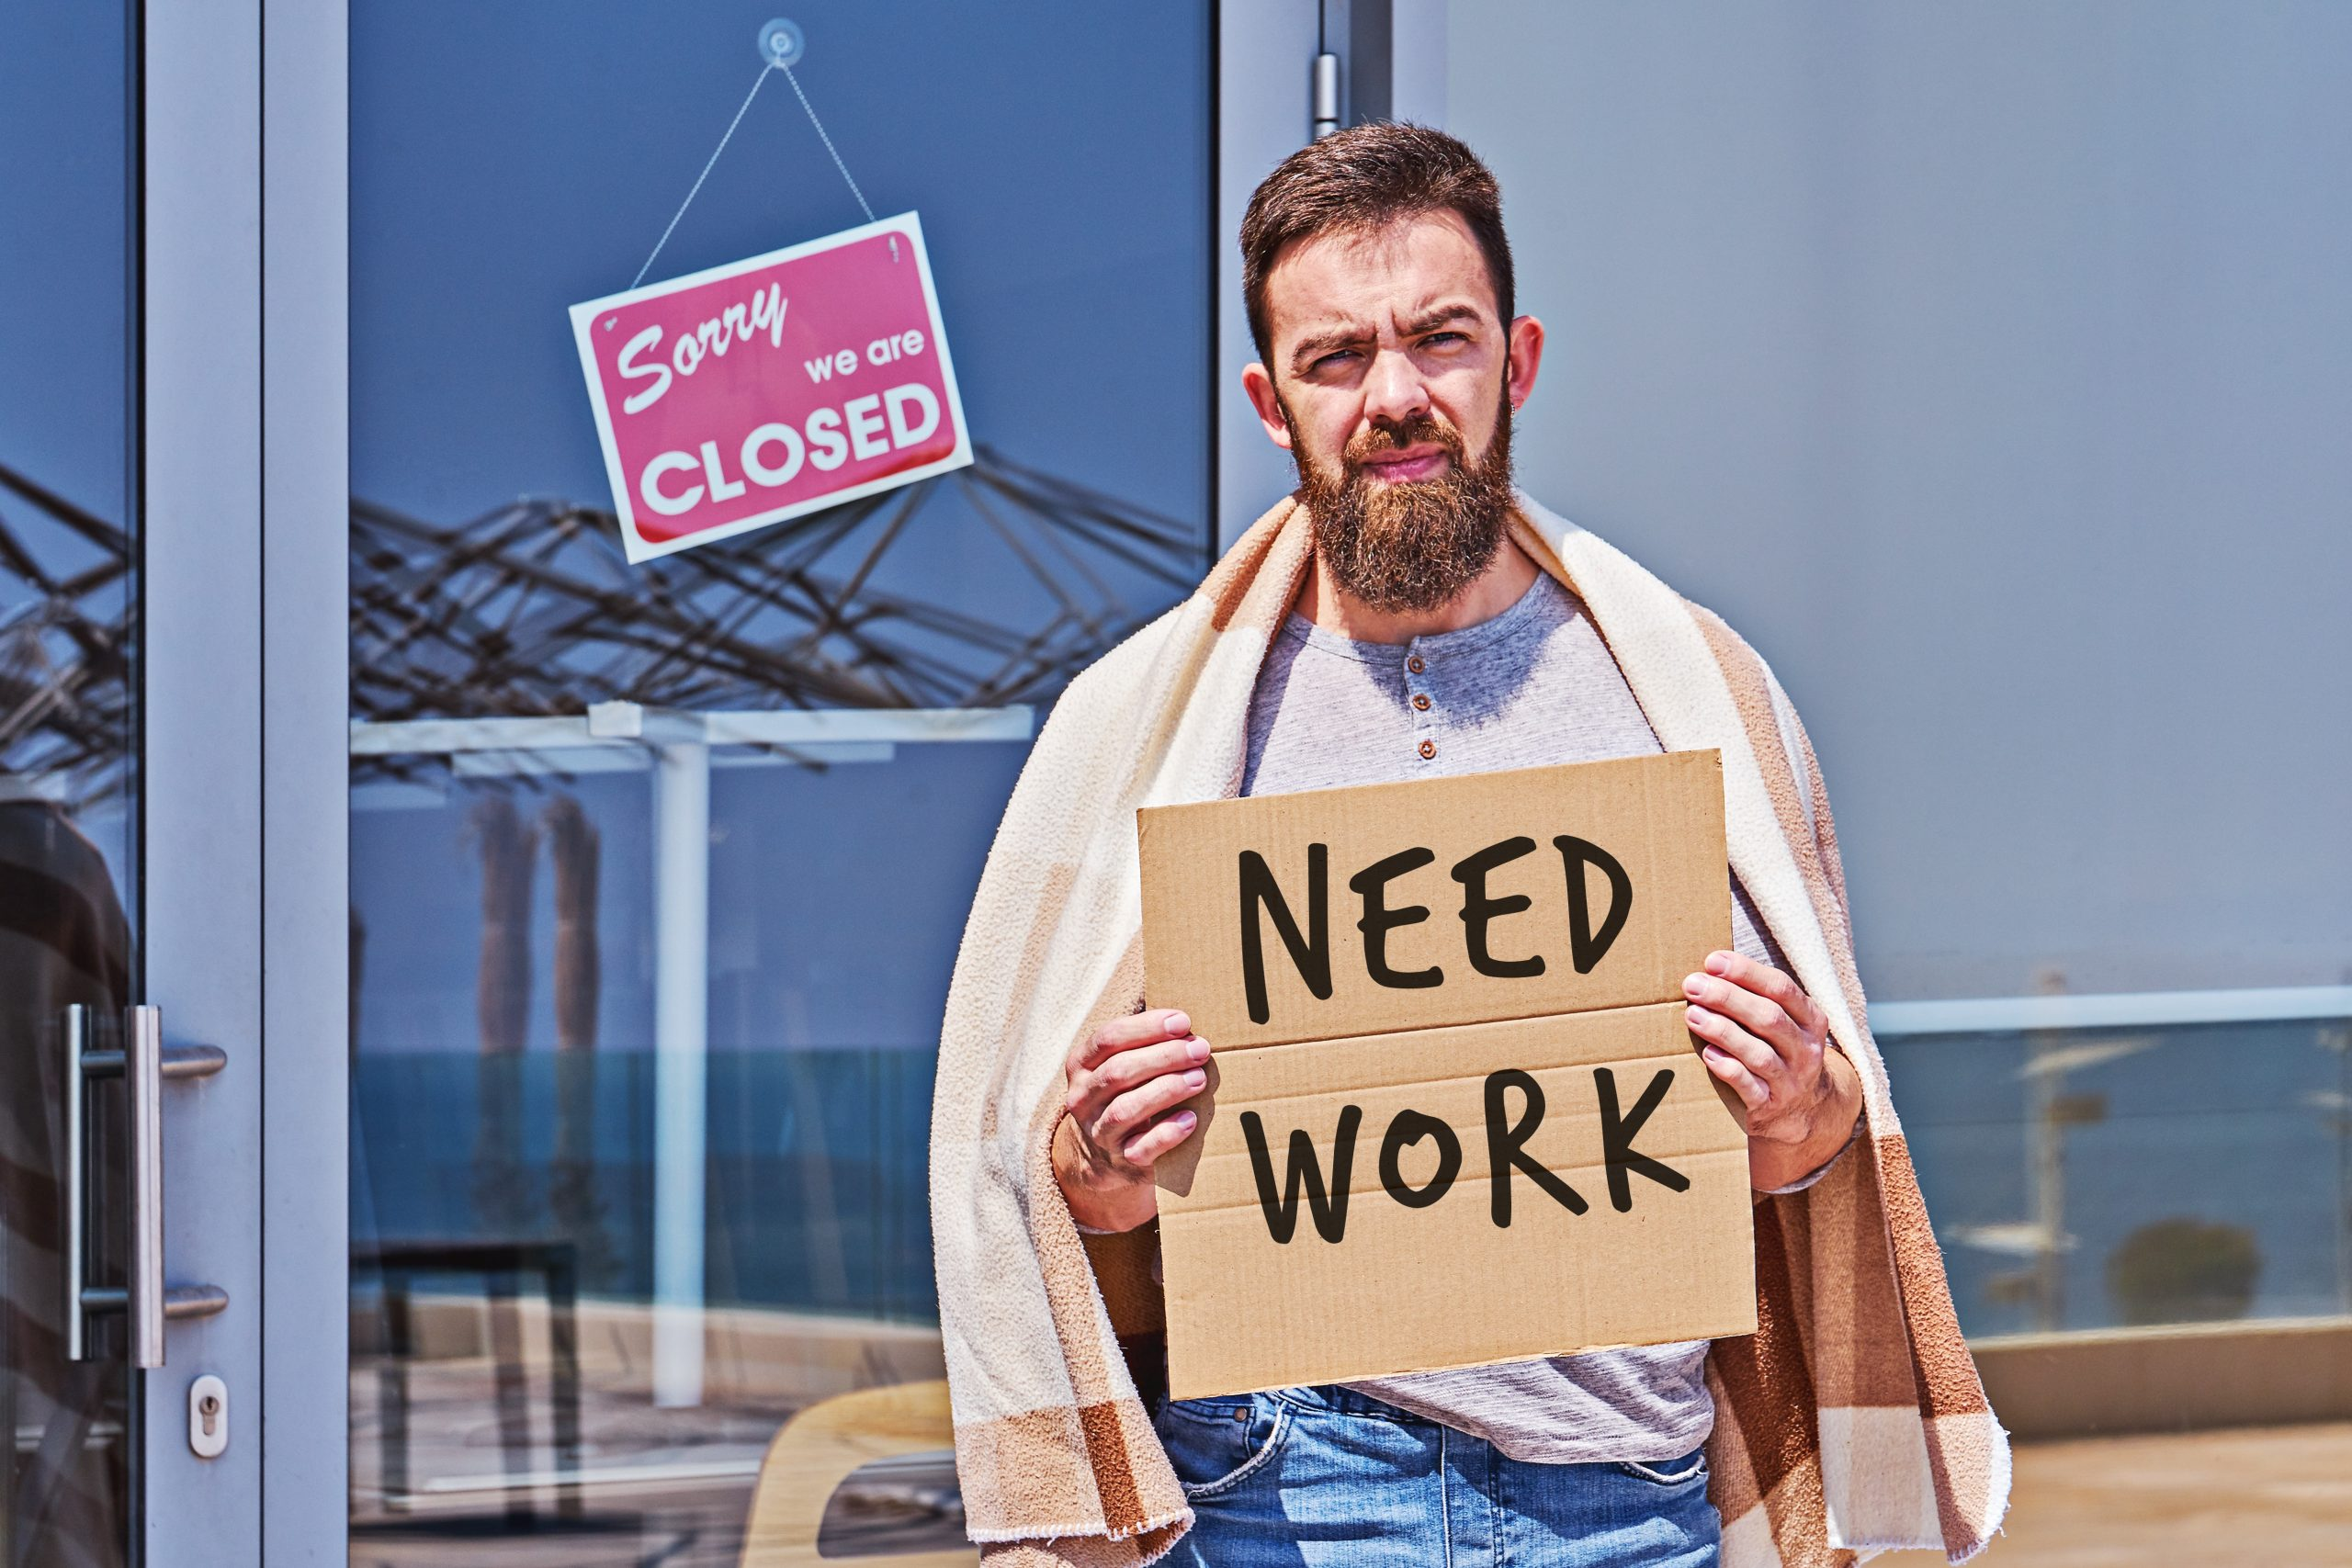 Unemployed guy with signboad NEED WORK near closed door office or cafe. Unemployment during coronavirus Covid-19 crisis, concept of job loss